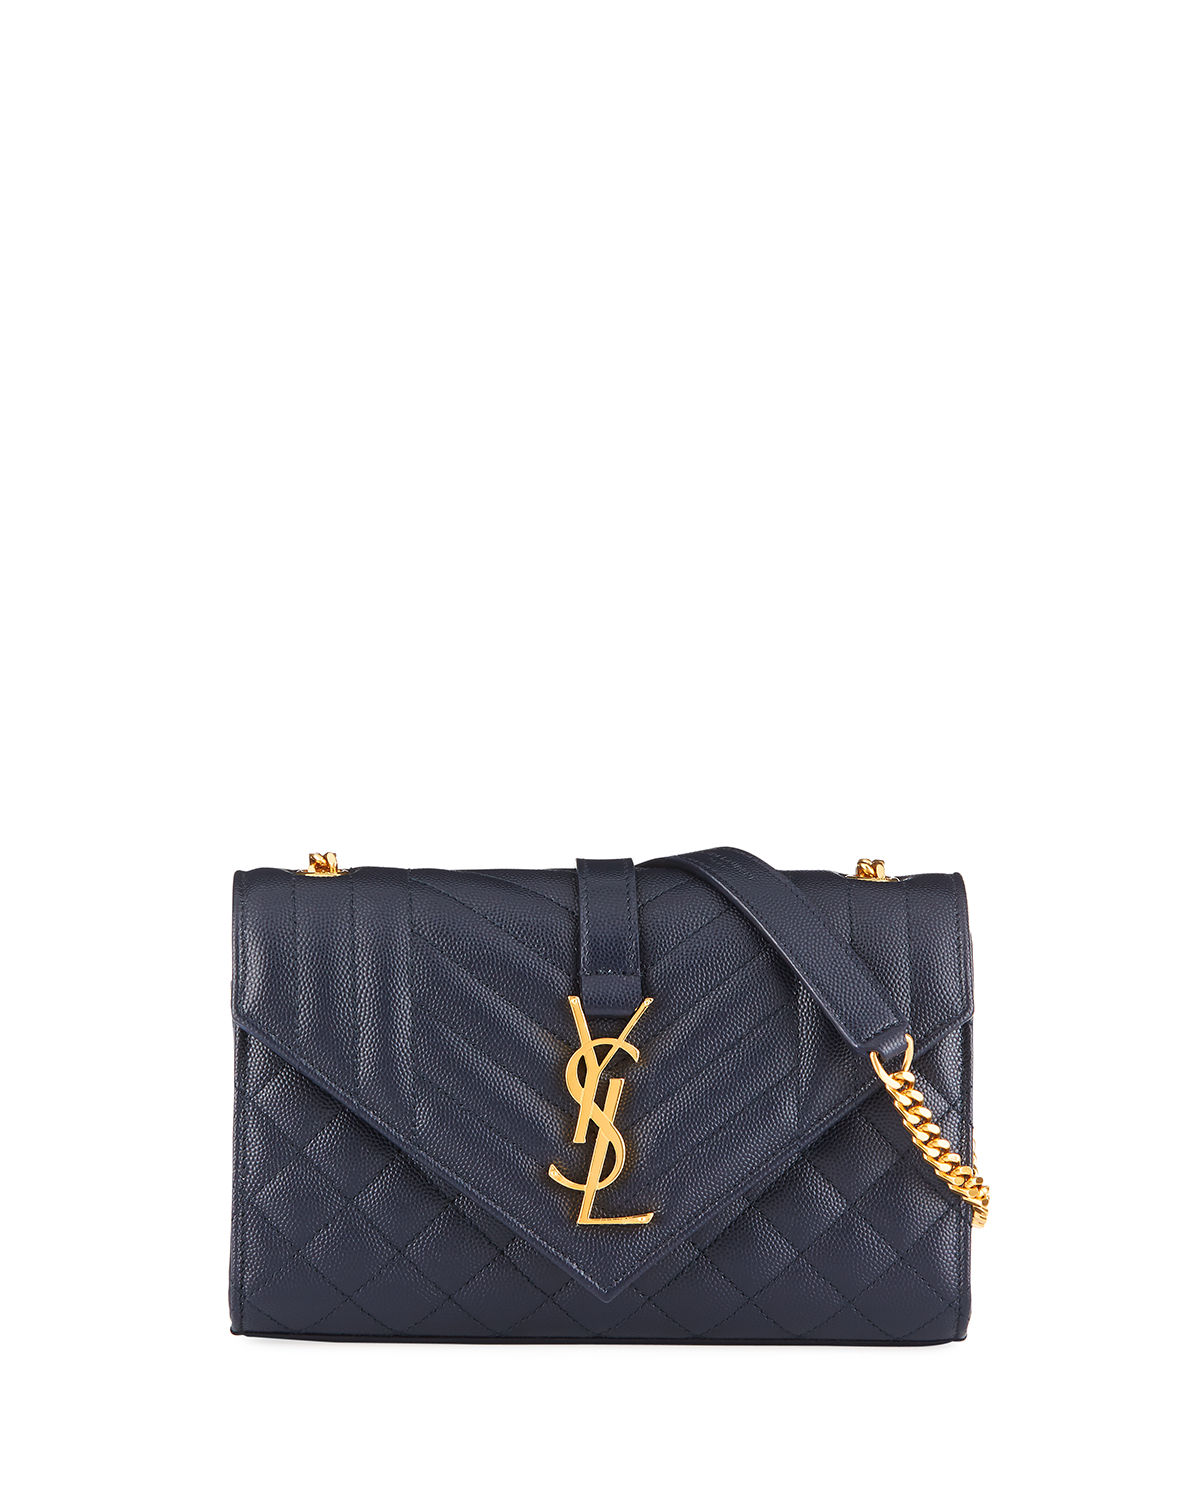 9a032bc56faa Saint LaurentMonogram YSL Envelope Small Chain Shoulder Bag - Golden  Hardware